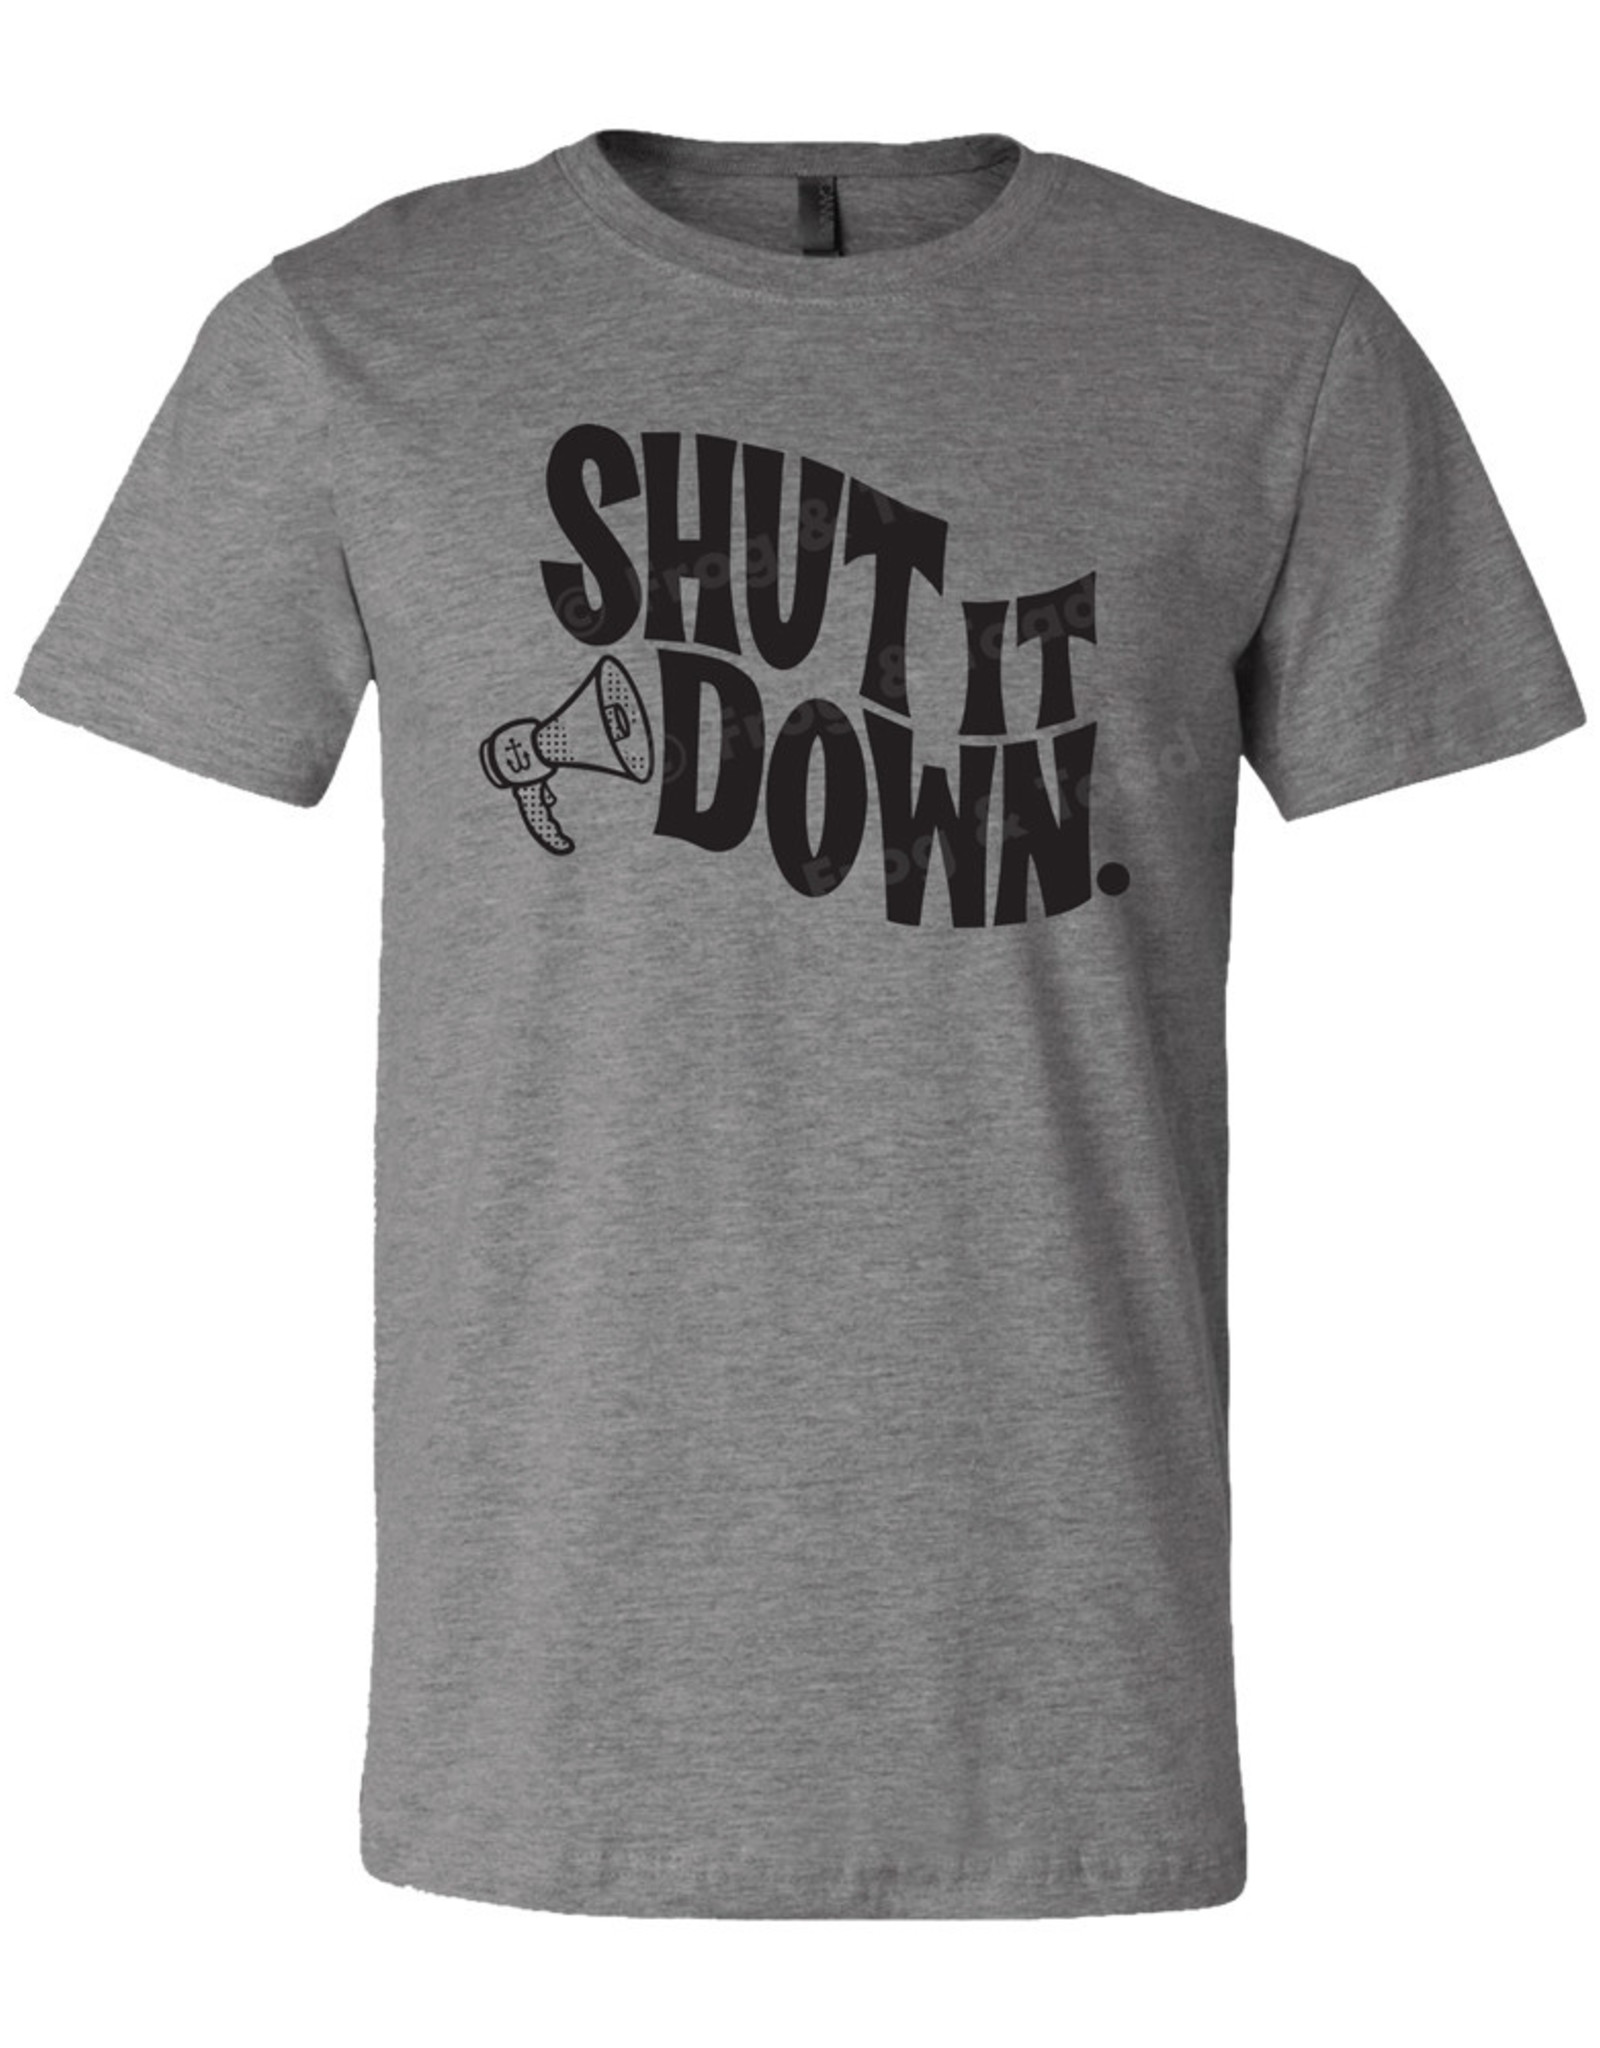 Shut It Down T-Shirt